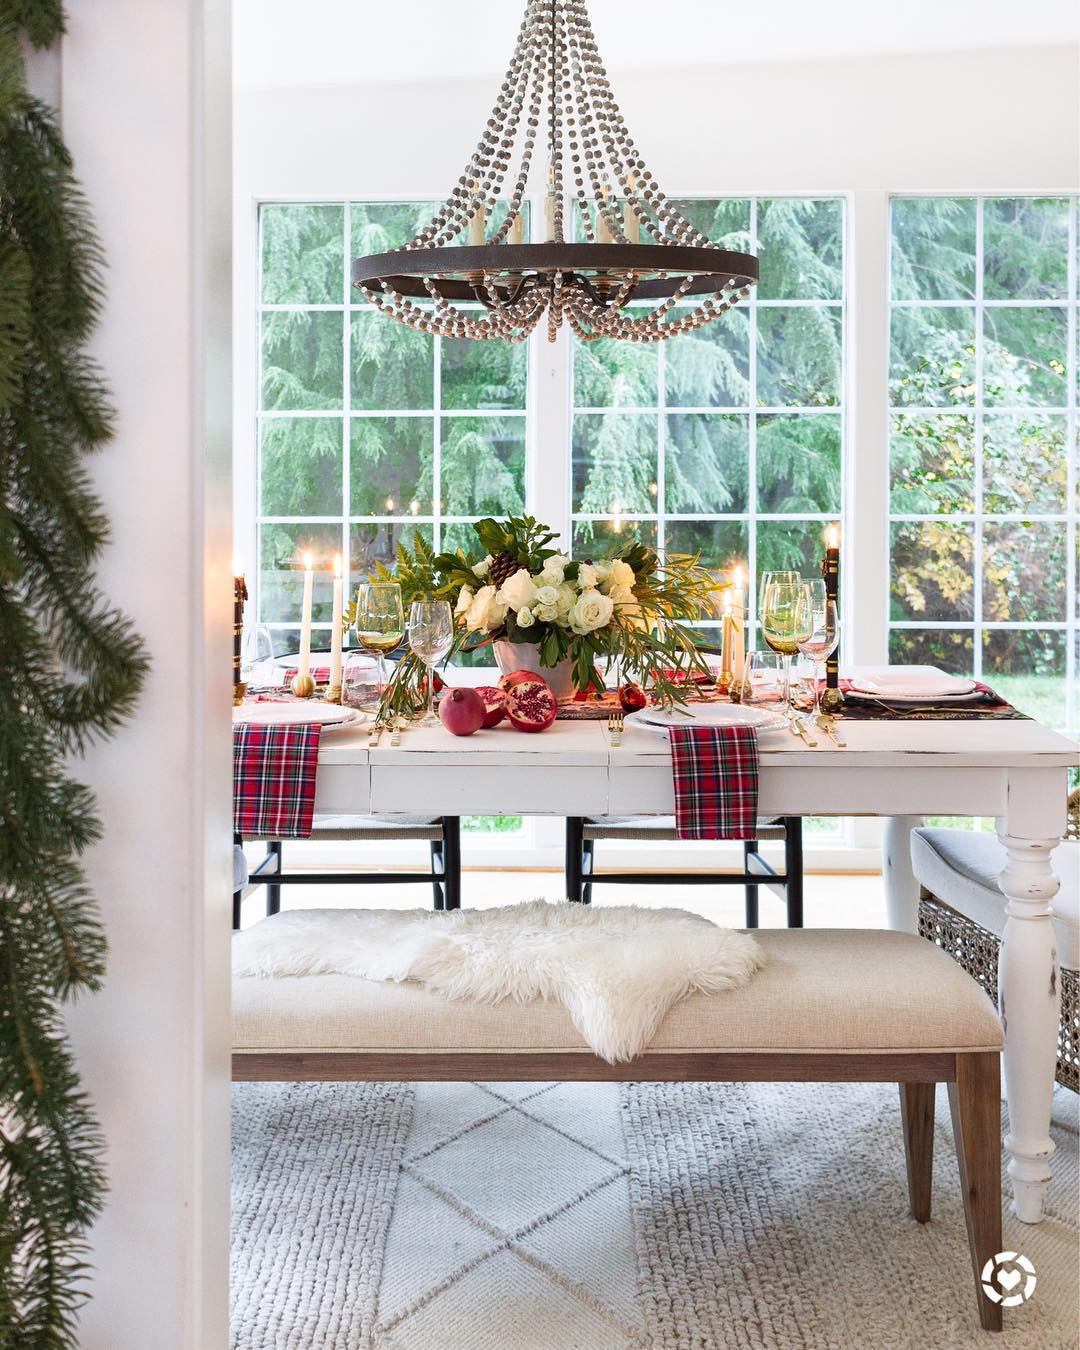 Christmas Tablescape Ideas | ZevyJoy Blog